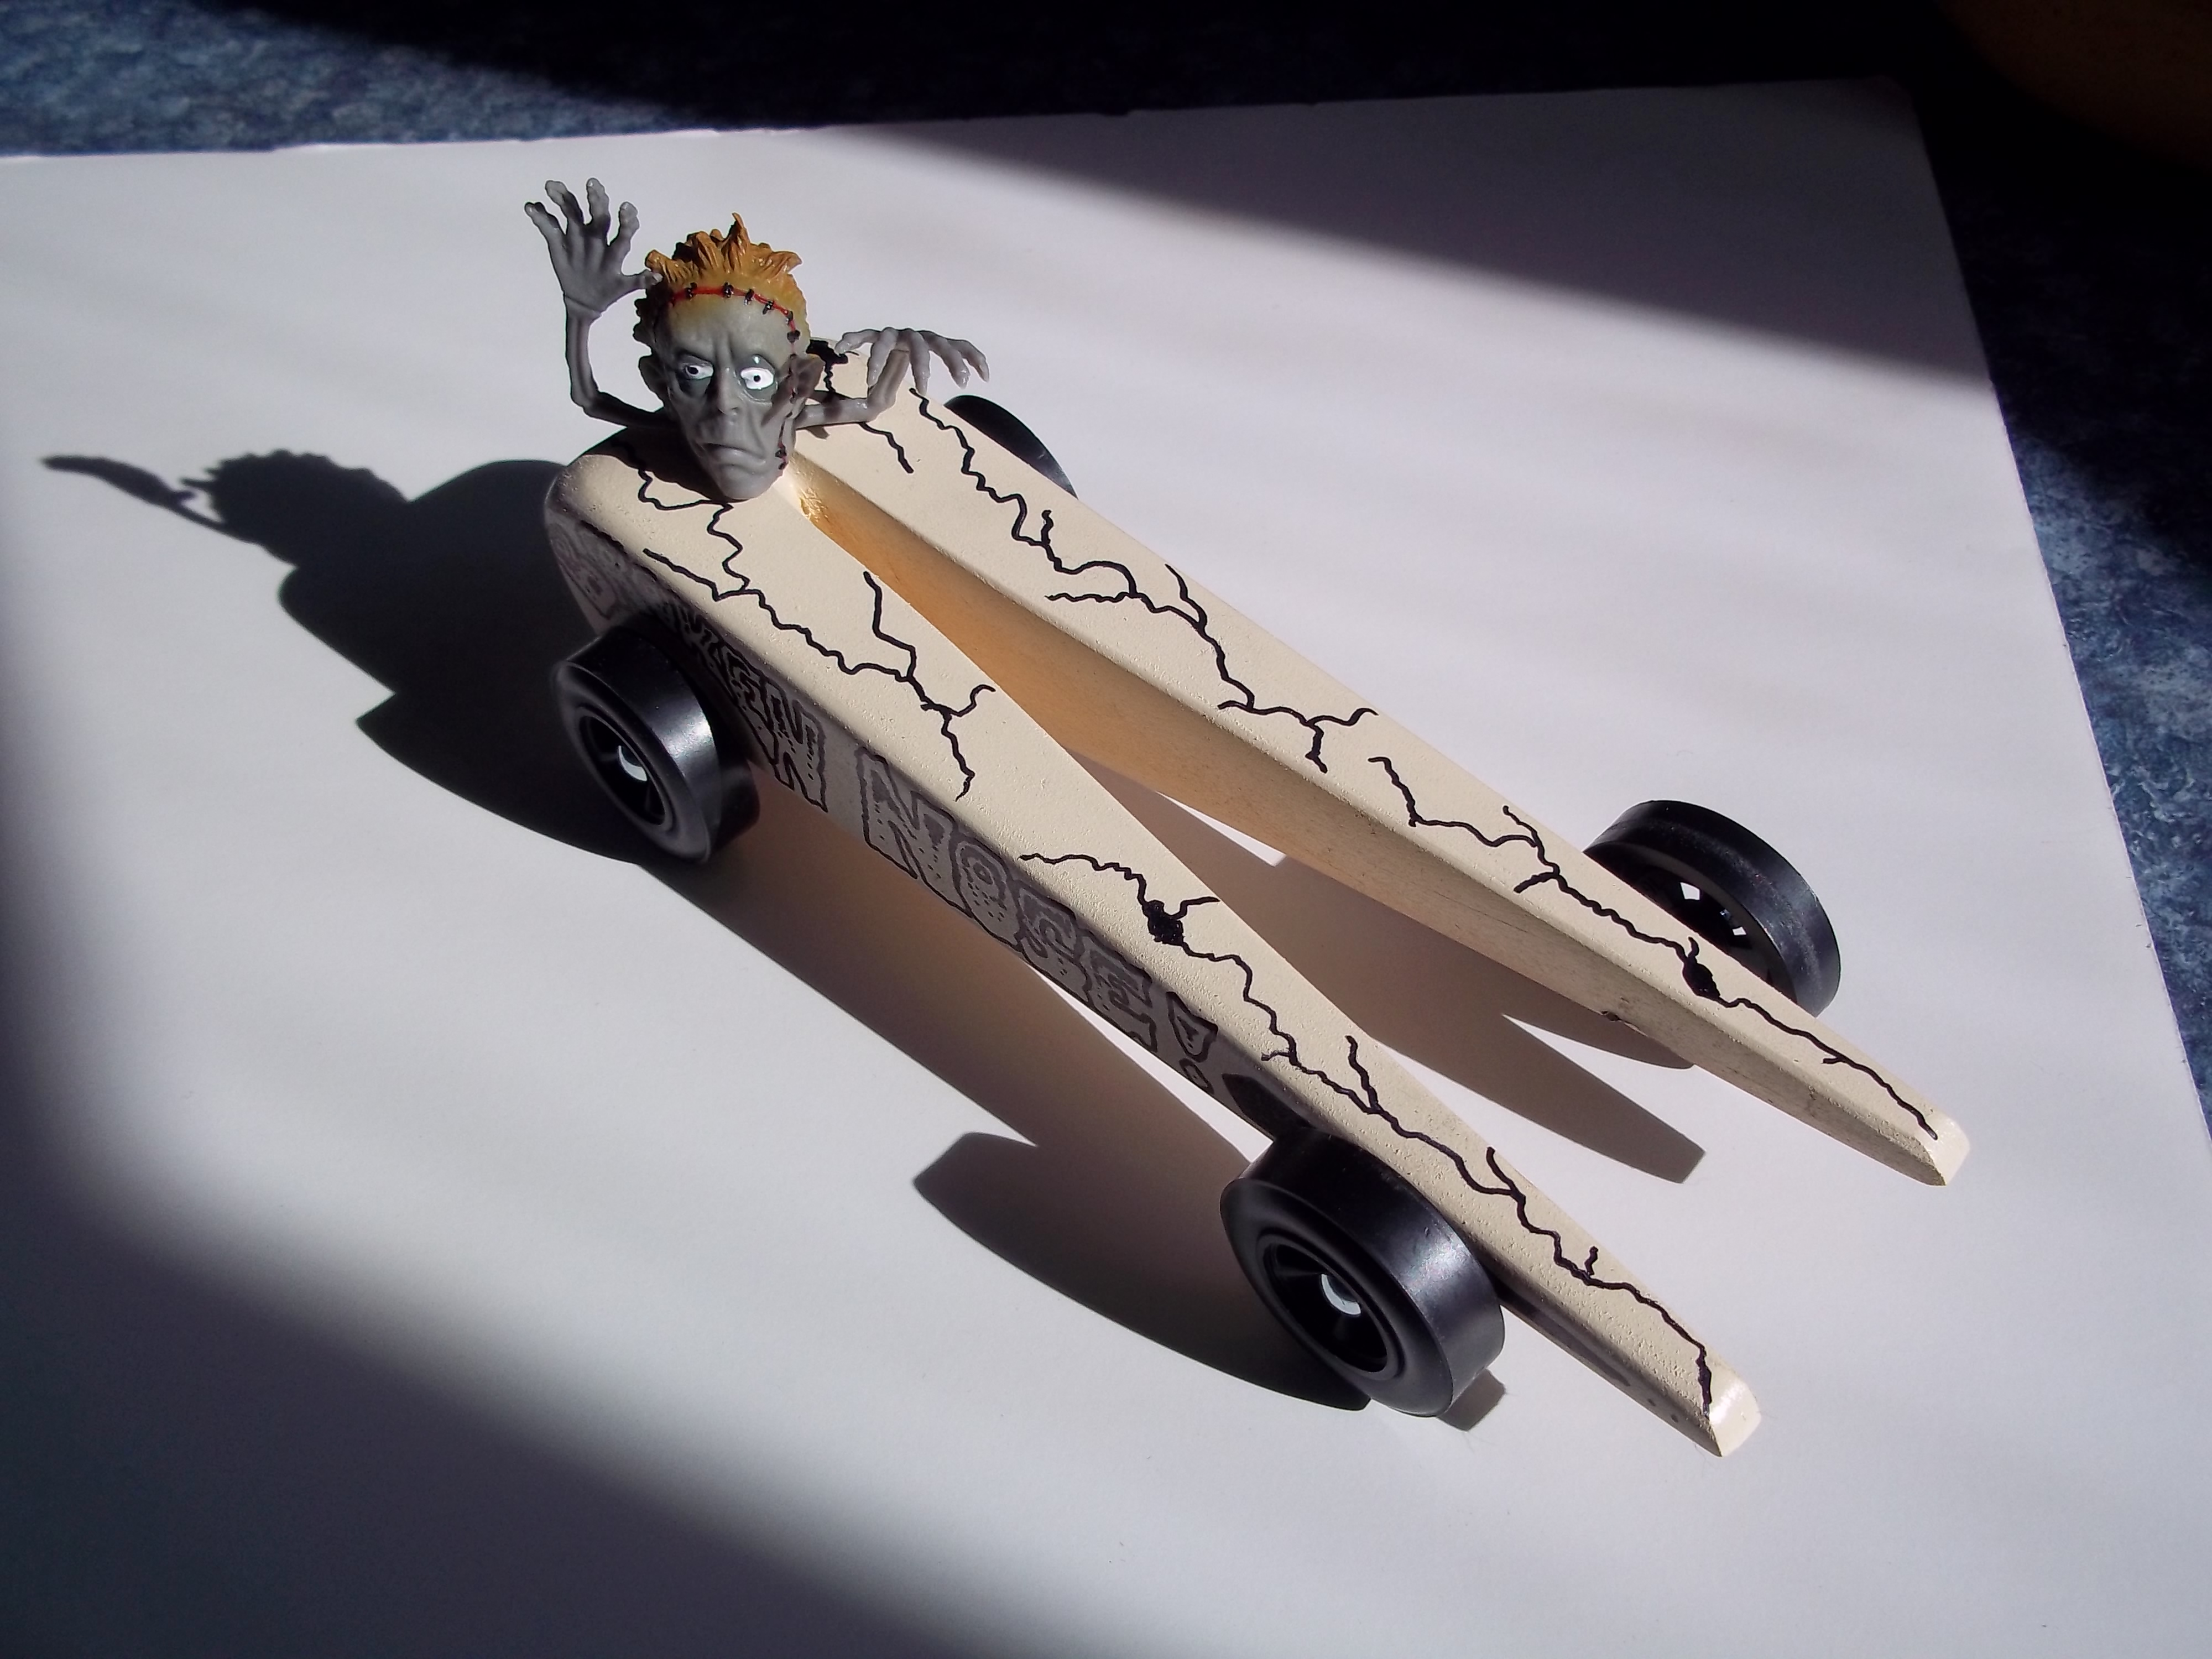 Derbymonster Proves Cub Scout Pinewood Derby No